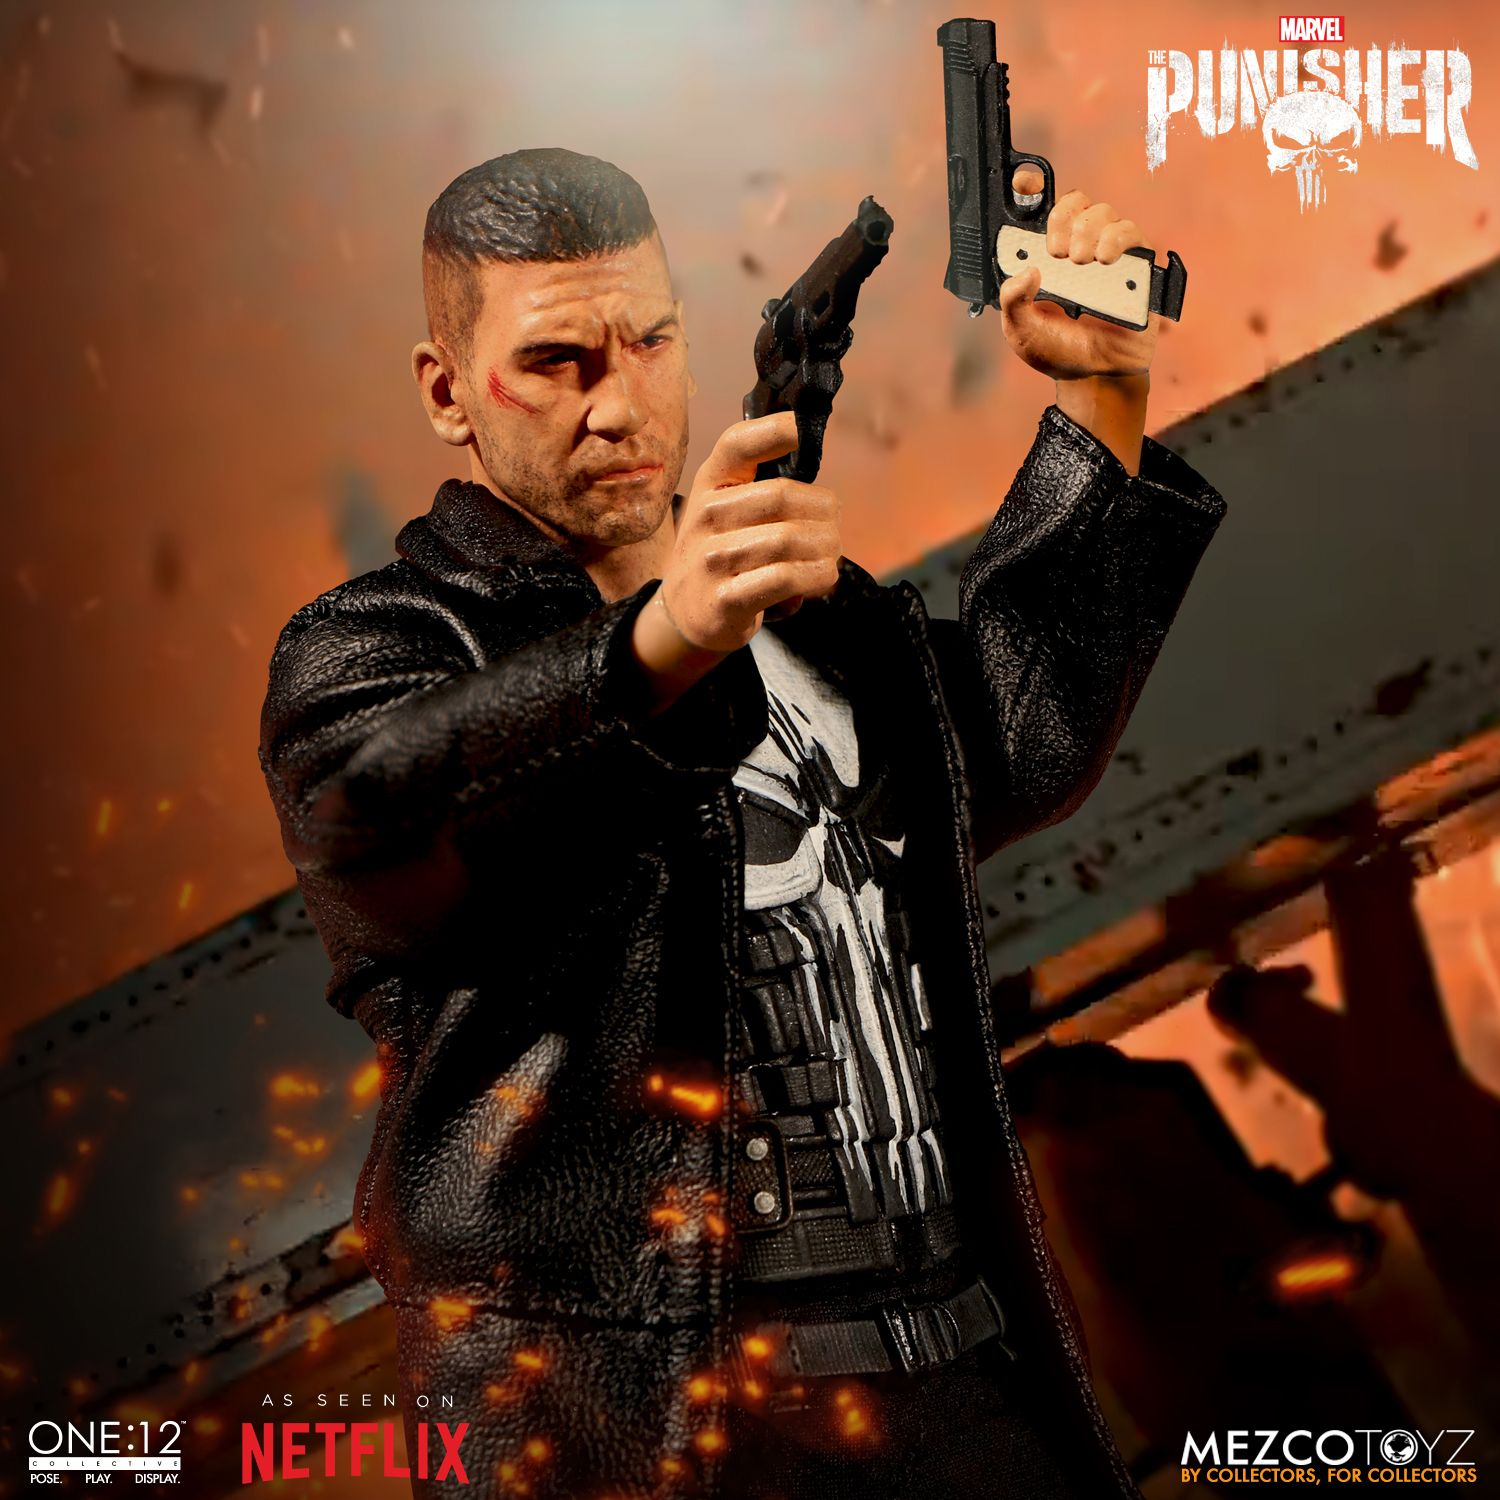 One 12 Collective Punisher Figure Coming Soon